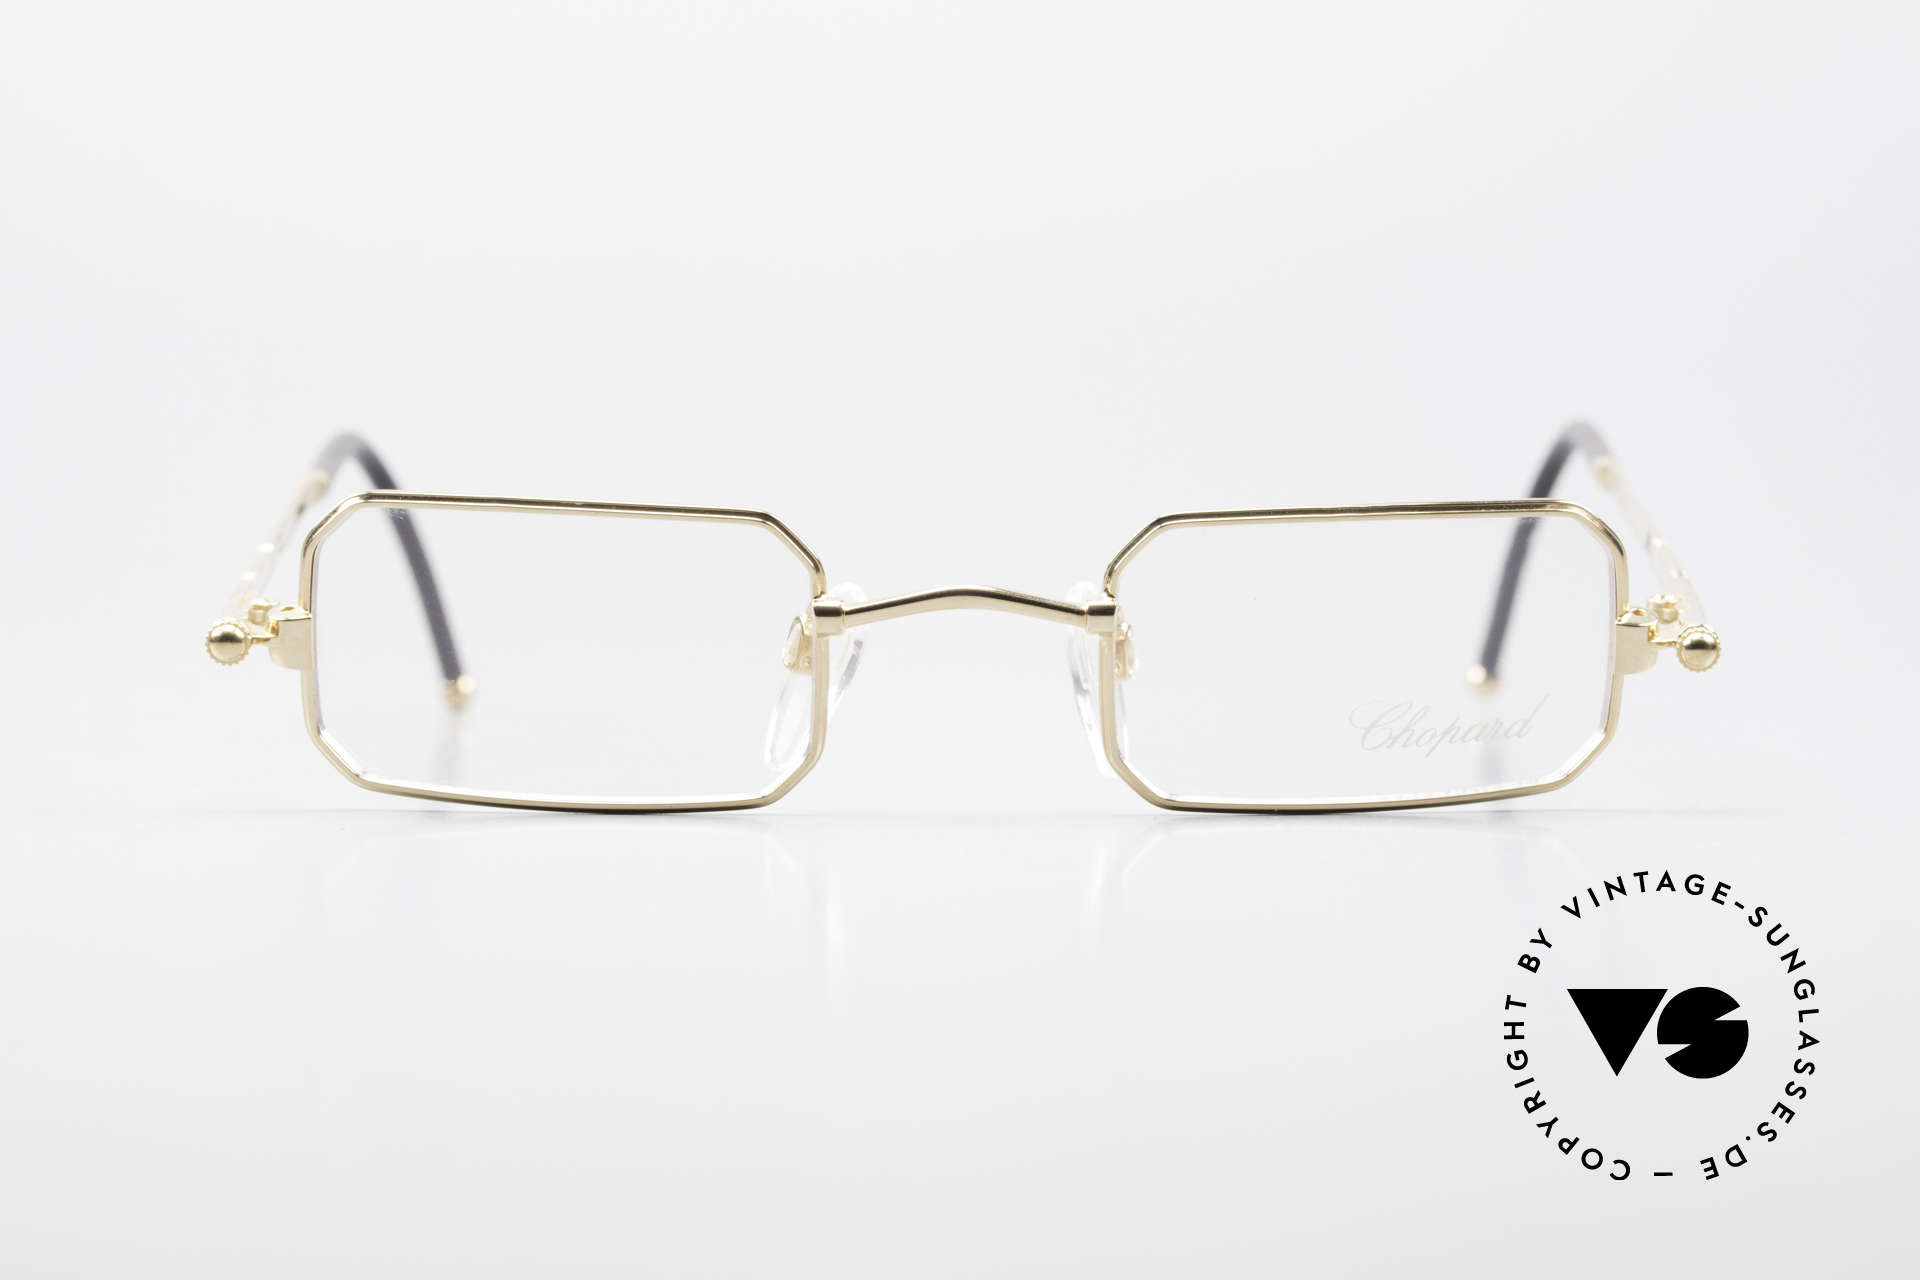 Chopard C002 Octagonal Luxury Eyeglasses, luxury watch, jewellery and accessories company, Made for Men and Women